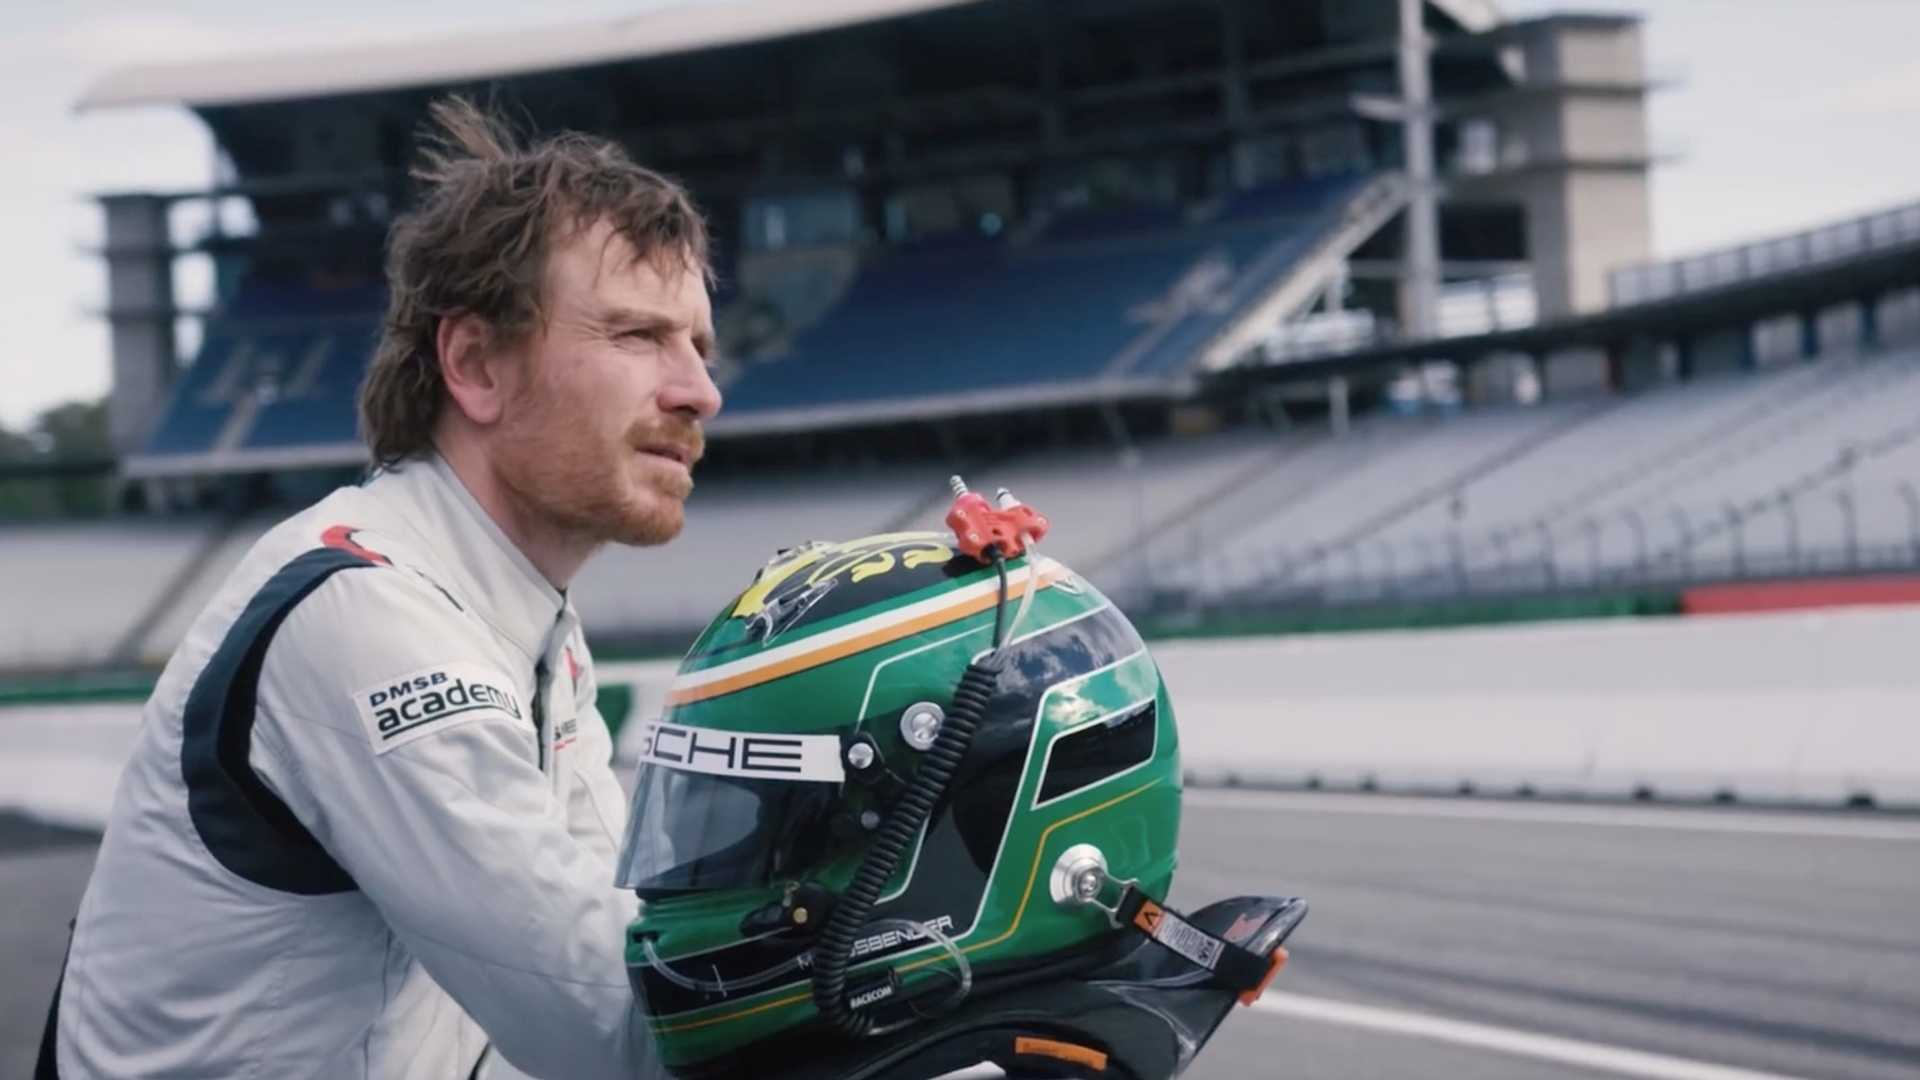 Porsche and Actor Michael Fassbender Release Season 3 of the Road to Le Mans